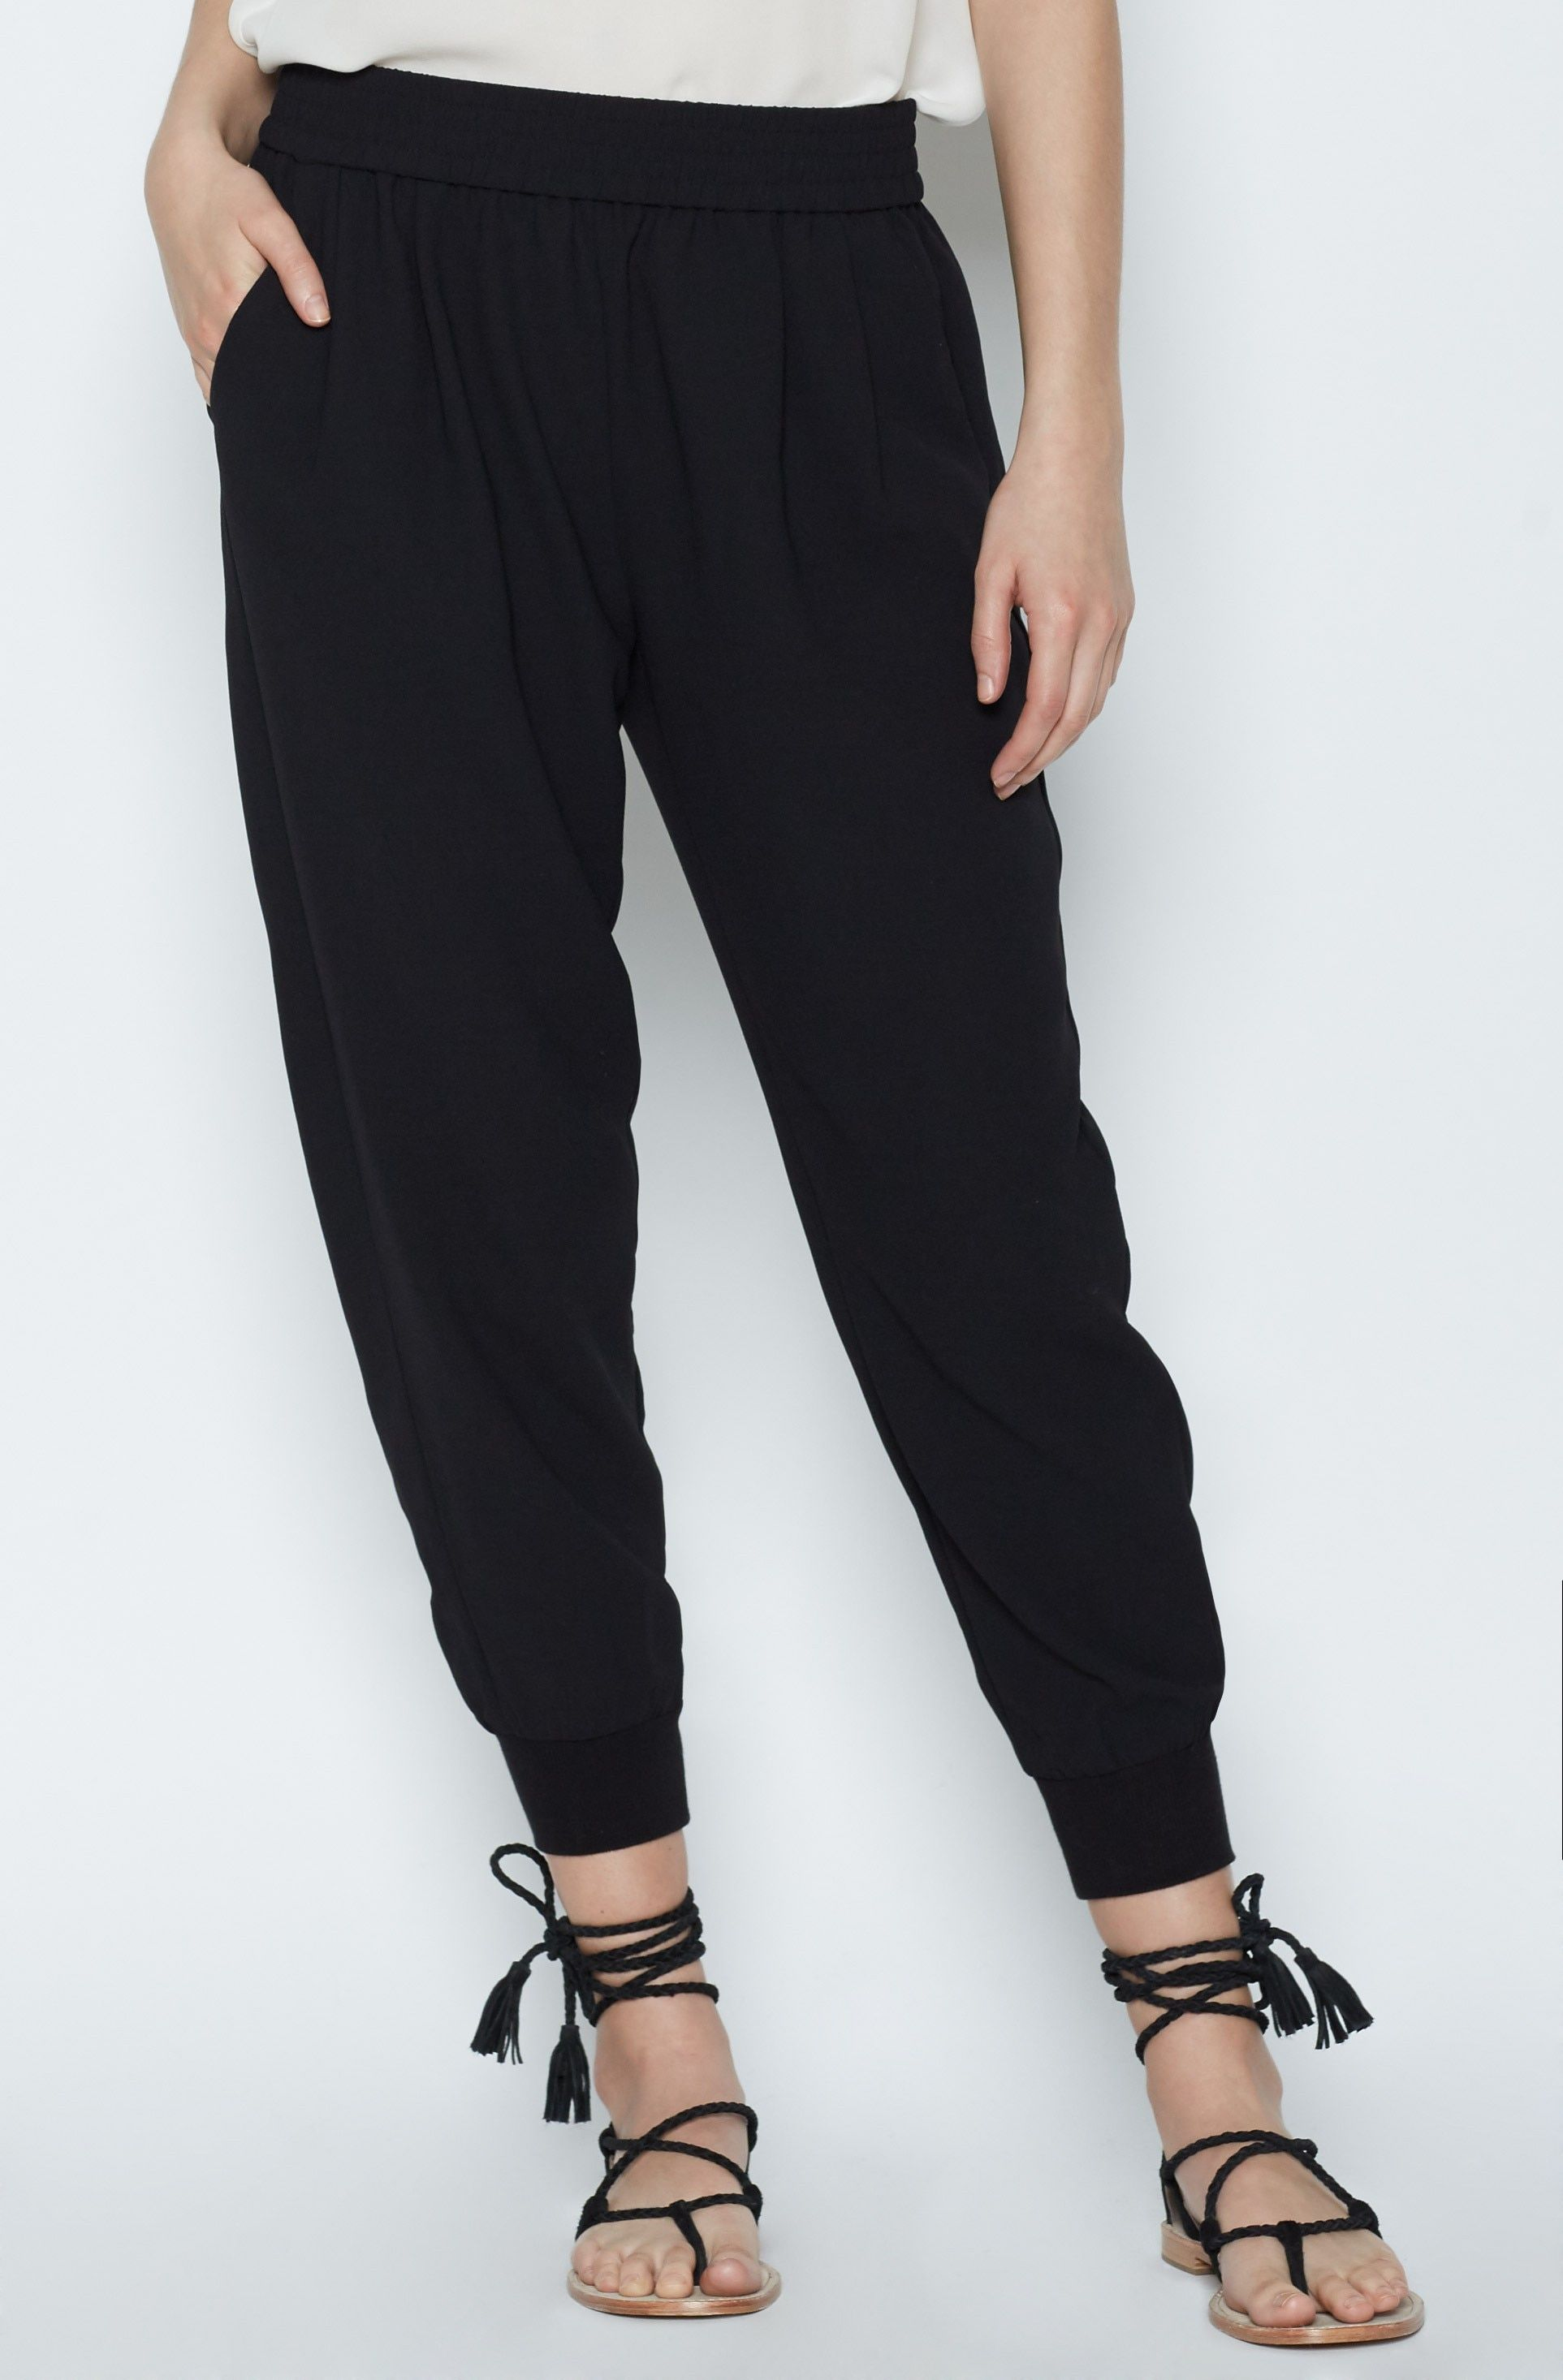 197ca84ff388 ... discount sale d95ac b19d7 Womens Mariner Crop Pant made of Polyester ...